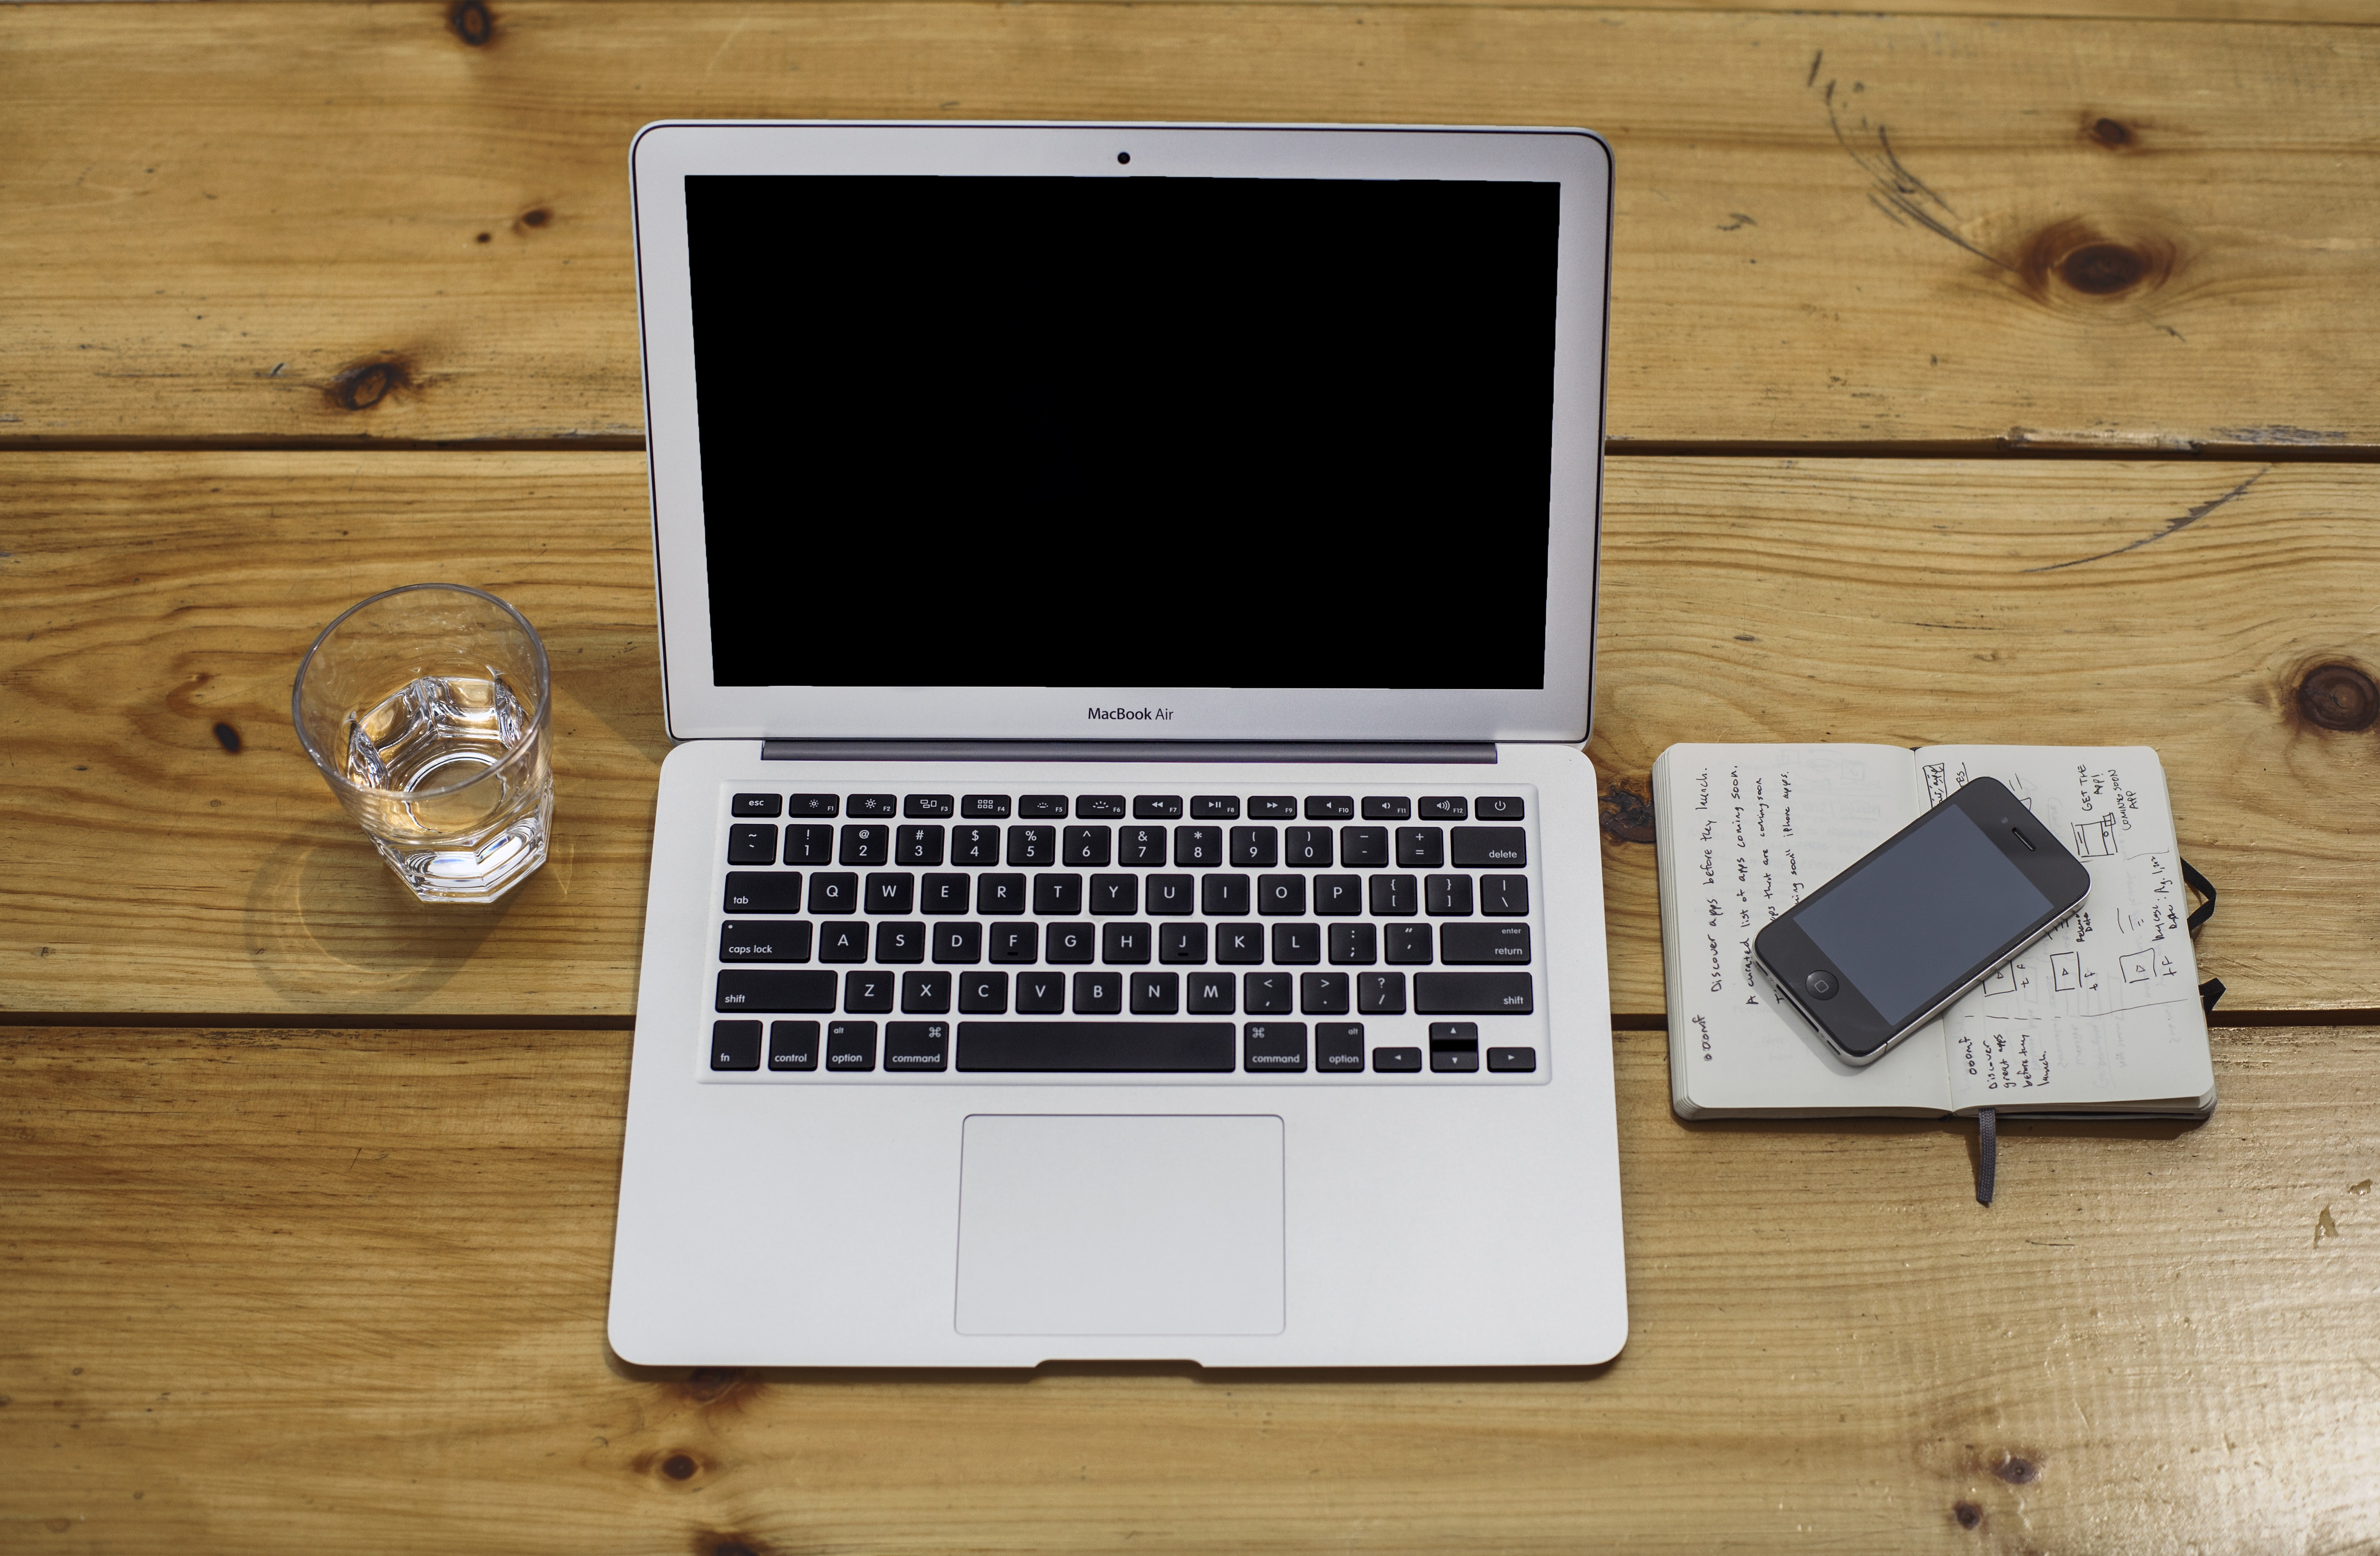 An iPhone, a MacBook and a glass of water on a wooden surface